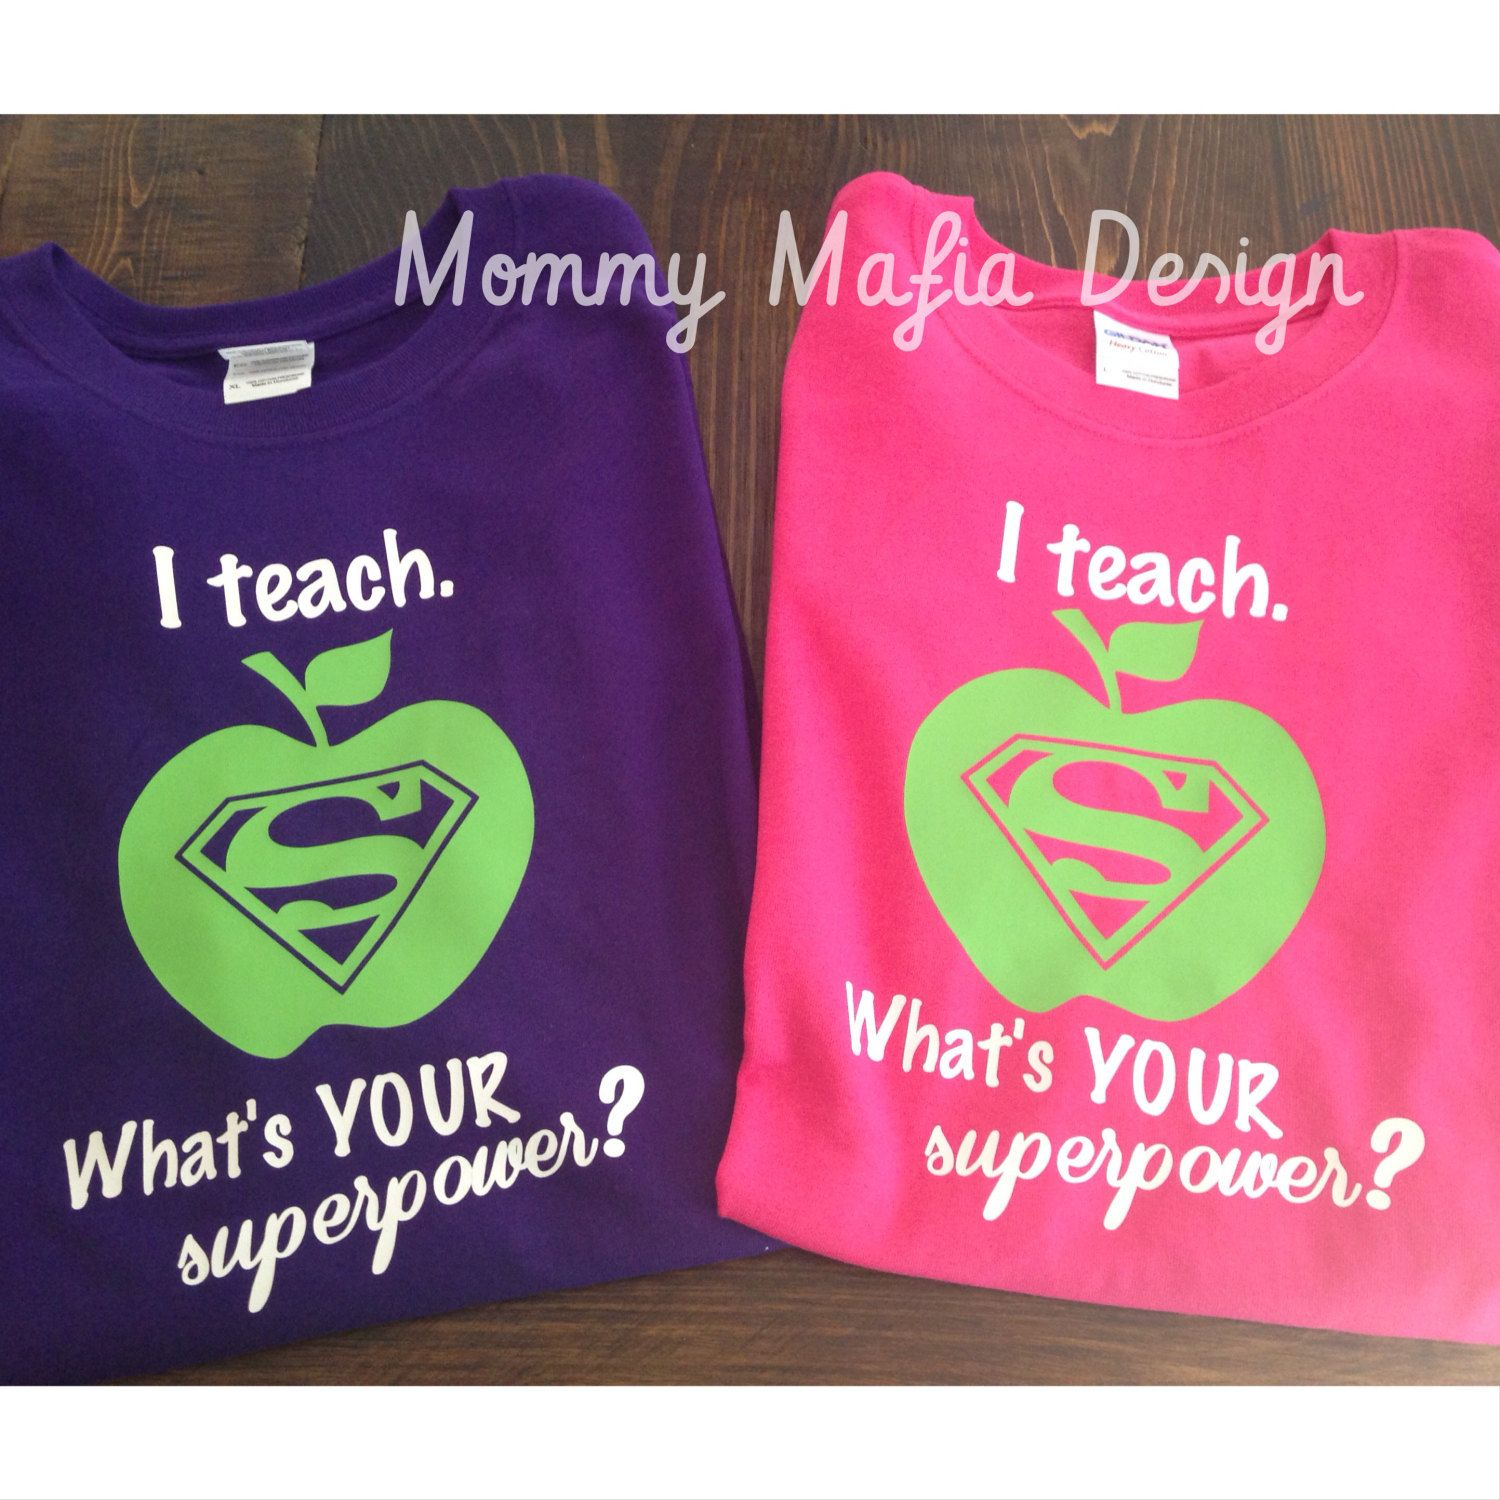 We Here At Mommy Mafia Designs Love Teachers, After All,